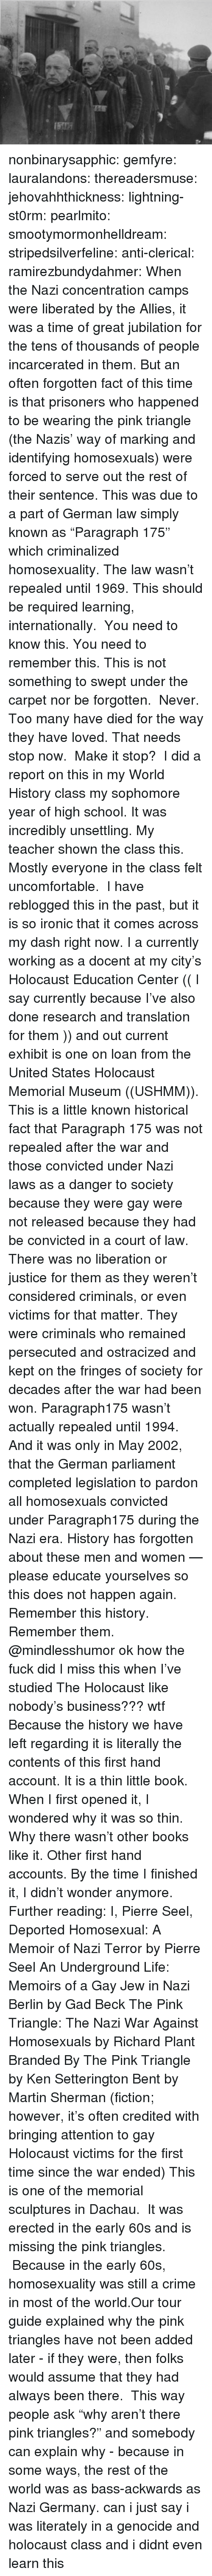 """unsettling: nonbinarysapphic:  gemfyre:  lauralandons:  thereadersmuse:  jehovahhthickness:  lightning-st0rm:  pearlmito:  smootymormonhelldream:  stripedsilverfeline:  anti-clerical:  ramirezbundydahmer:  When the Nazi concentration camps were liberated by the Allies, it was a time of great jubilation for the tens of thousands of people incarcerated in them. But an often forgotten fact of this time is that prisoners who happened to be wearing the pink triangle (the Nazis' way of marking and identifying homosexuals) were forced to serve out the rest of their sentence. This was due to a part of German law simply known as """"Paragraph 175"""" which criminalized homosexuality. The law wasn't repealed until 1969.  This should be required learning, internationally.  You need to know this. You need to remember this. This is not something to swept under the carpet nor be forgotten. Never. Too many have died for the way they have loved. That needs stop now. Make it stop?  I did a report on this in my World History class my sophomore year of high school. It was incredibly unsettling.  My teacher shown the class this. Mostly everyone in the class felt uncomfortable.  I have reblogged this in the past, but it is so ironic that it comes across my dash right now. I a currently working as a docent at my city's Holocaust Education Center (( I say currently because I've also done research and translation for them )) and out current exhibit is one on loan from the United States Holocaust Memorial Museum ((USHMM)). This is a little known historical fact that Paragraph 175 was not repealed after the war and those convicted under Nazi laws as a danger to society because they were gay were not released because they had be convicted in a court of law. There was no liberation or justice for them as they weren't considered criminals, or even victims for that matter. They were criminals who remained persecuted and ostracized and kept on the fringes of society for decades after the war had been w"""